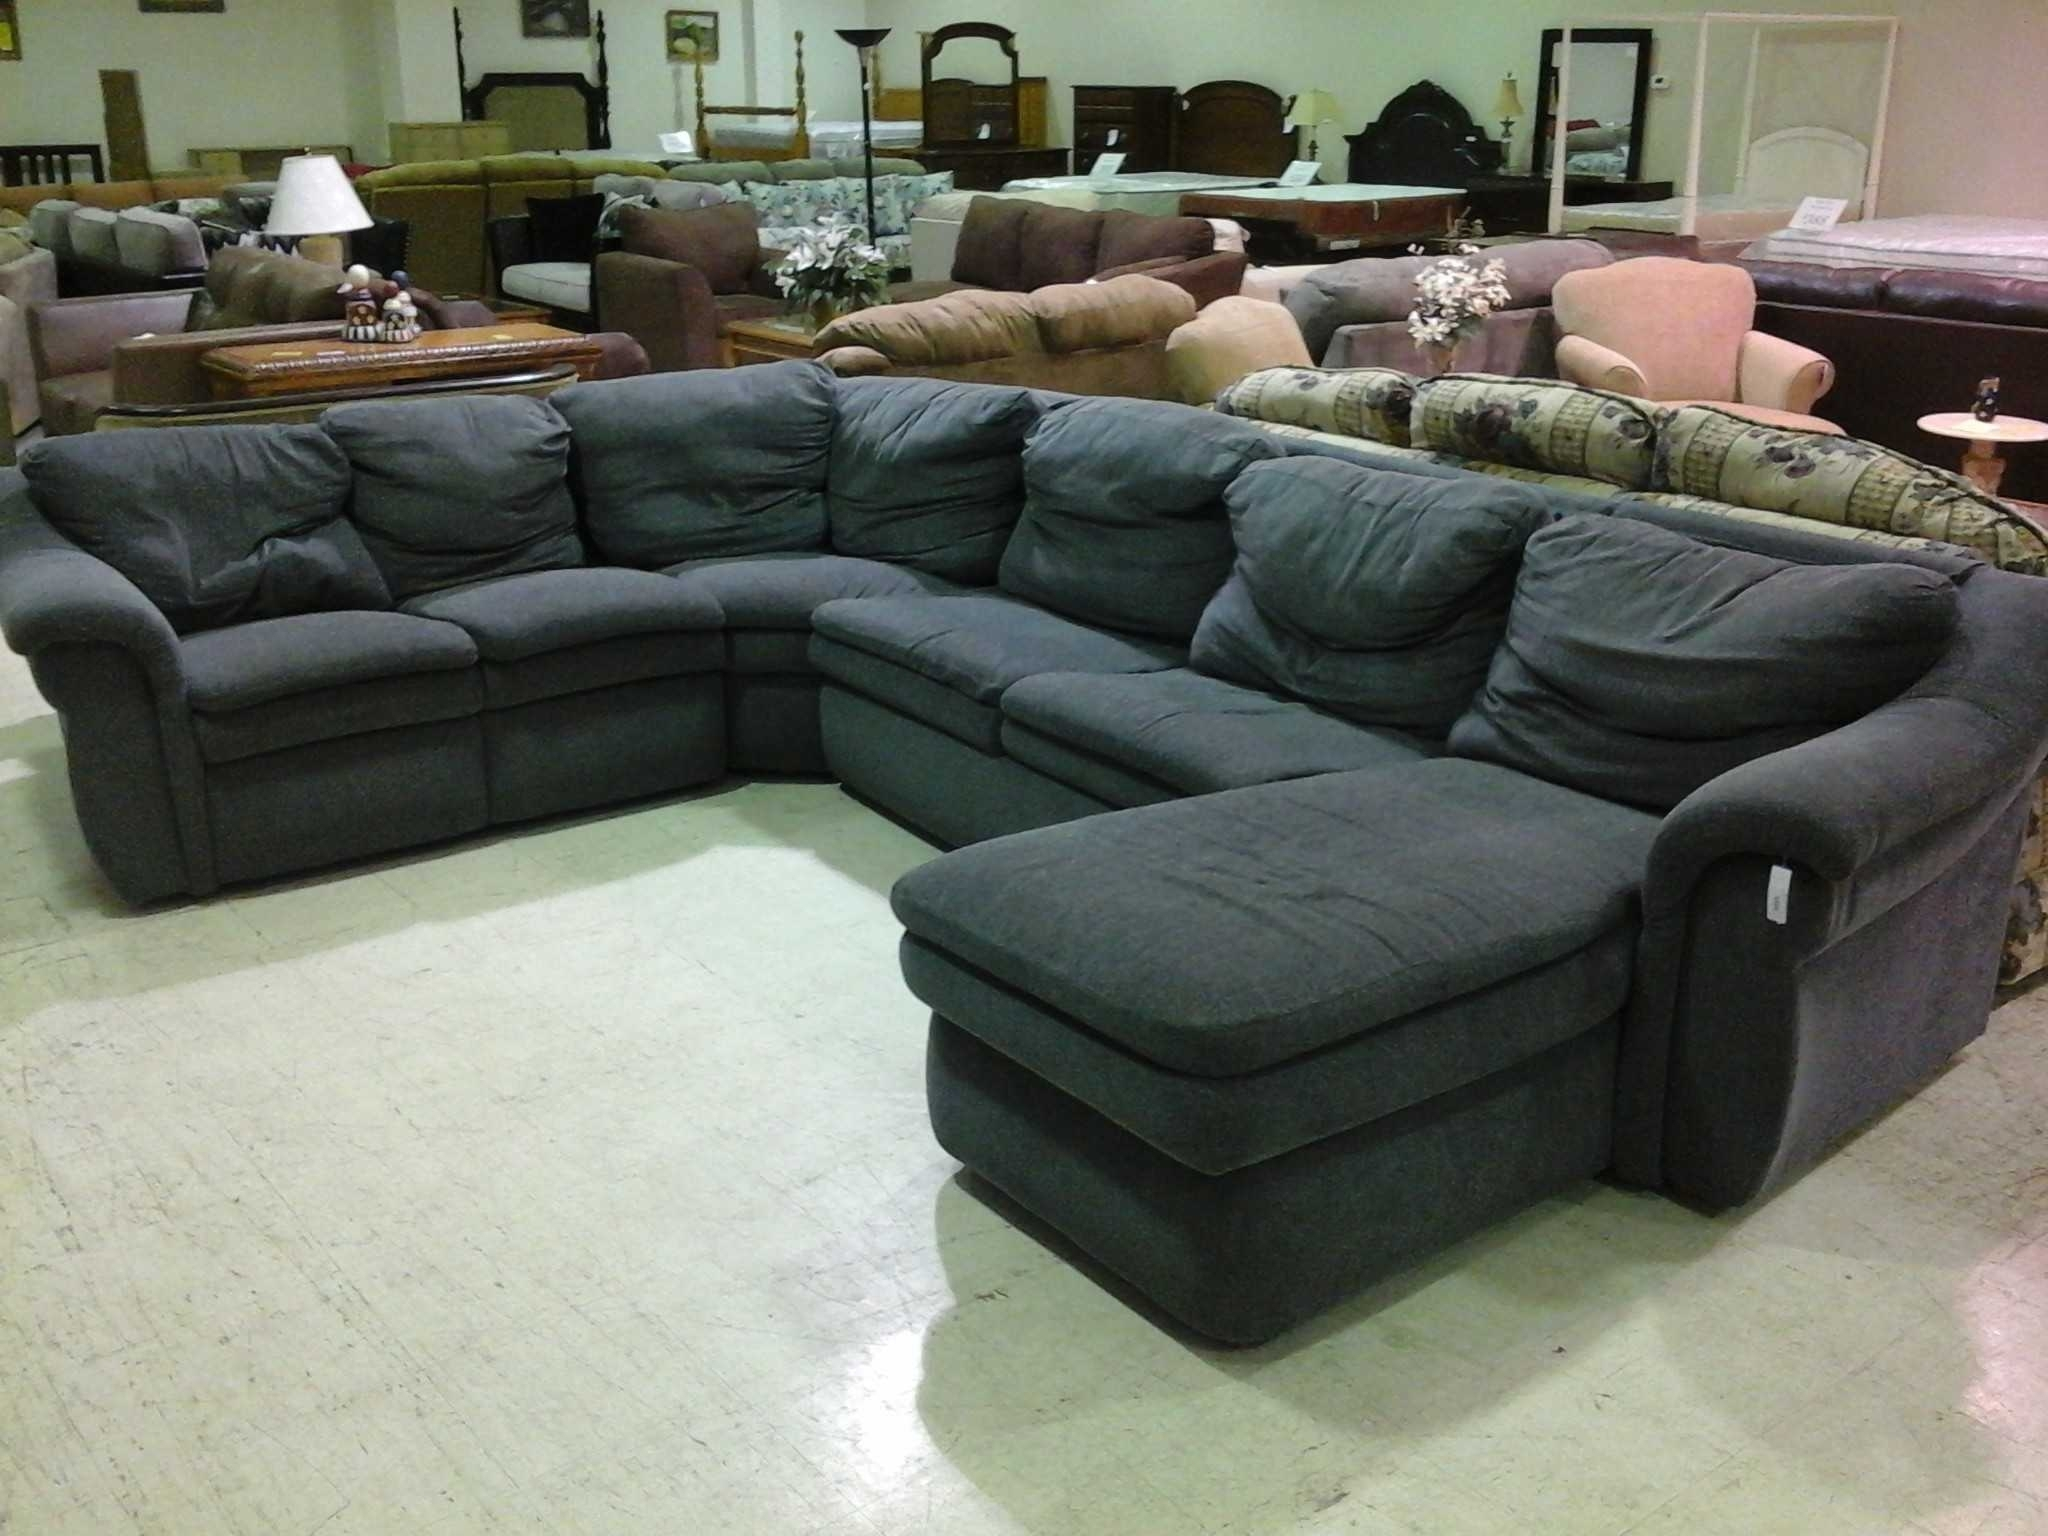 Sofa Design Ashley Furniture Collection With Charming Cheap In Sectional Sofas In San Antonio (View 9 of 10)